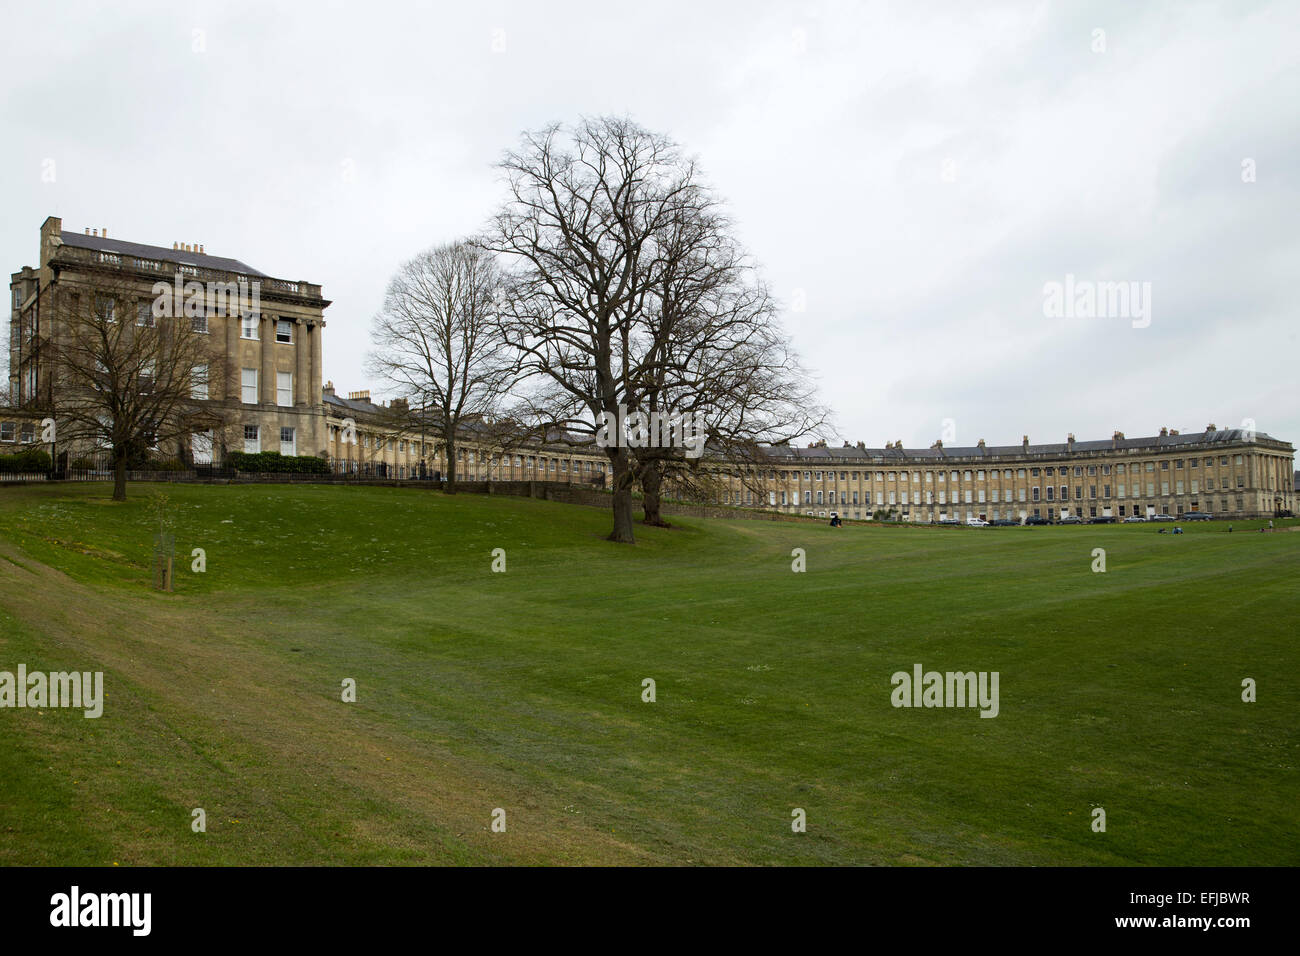 Royal Cresent Bath England from Victoria Park. - Stock Image